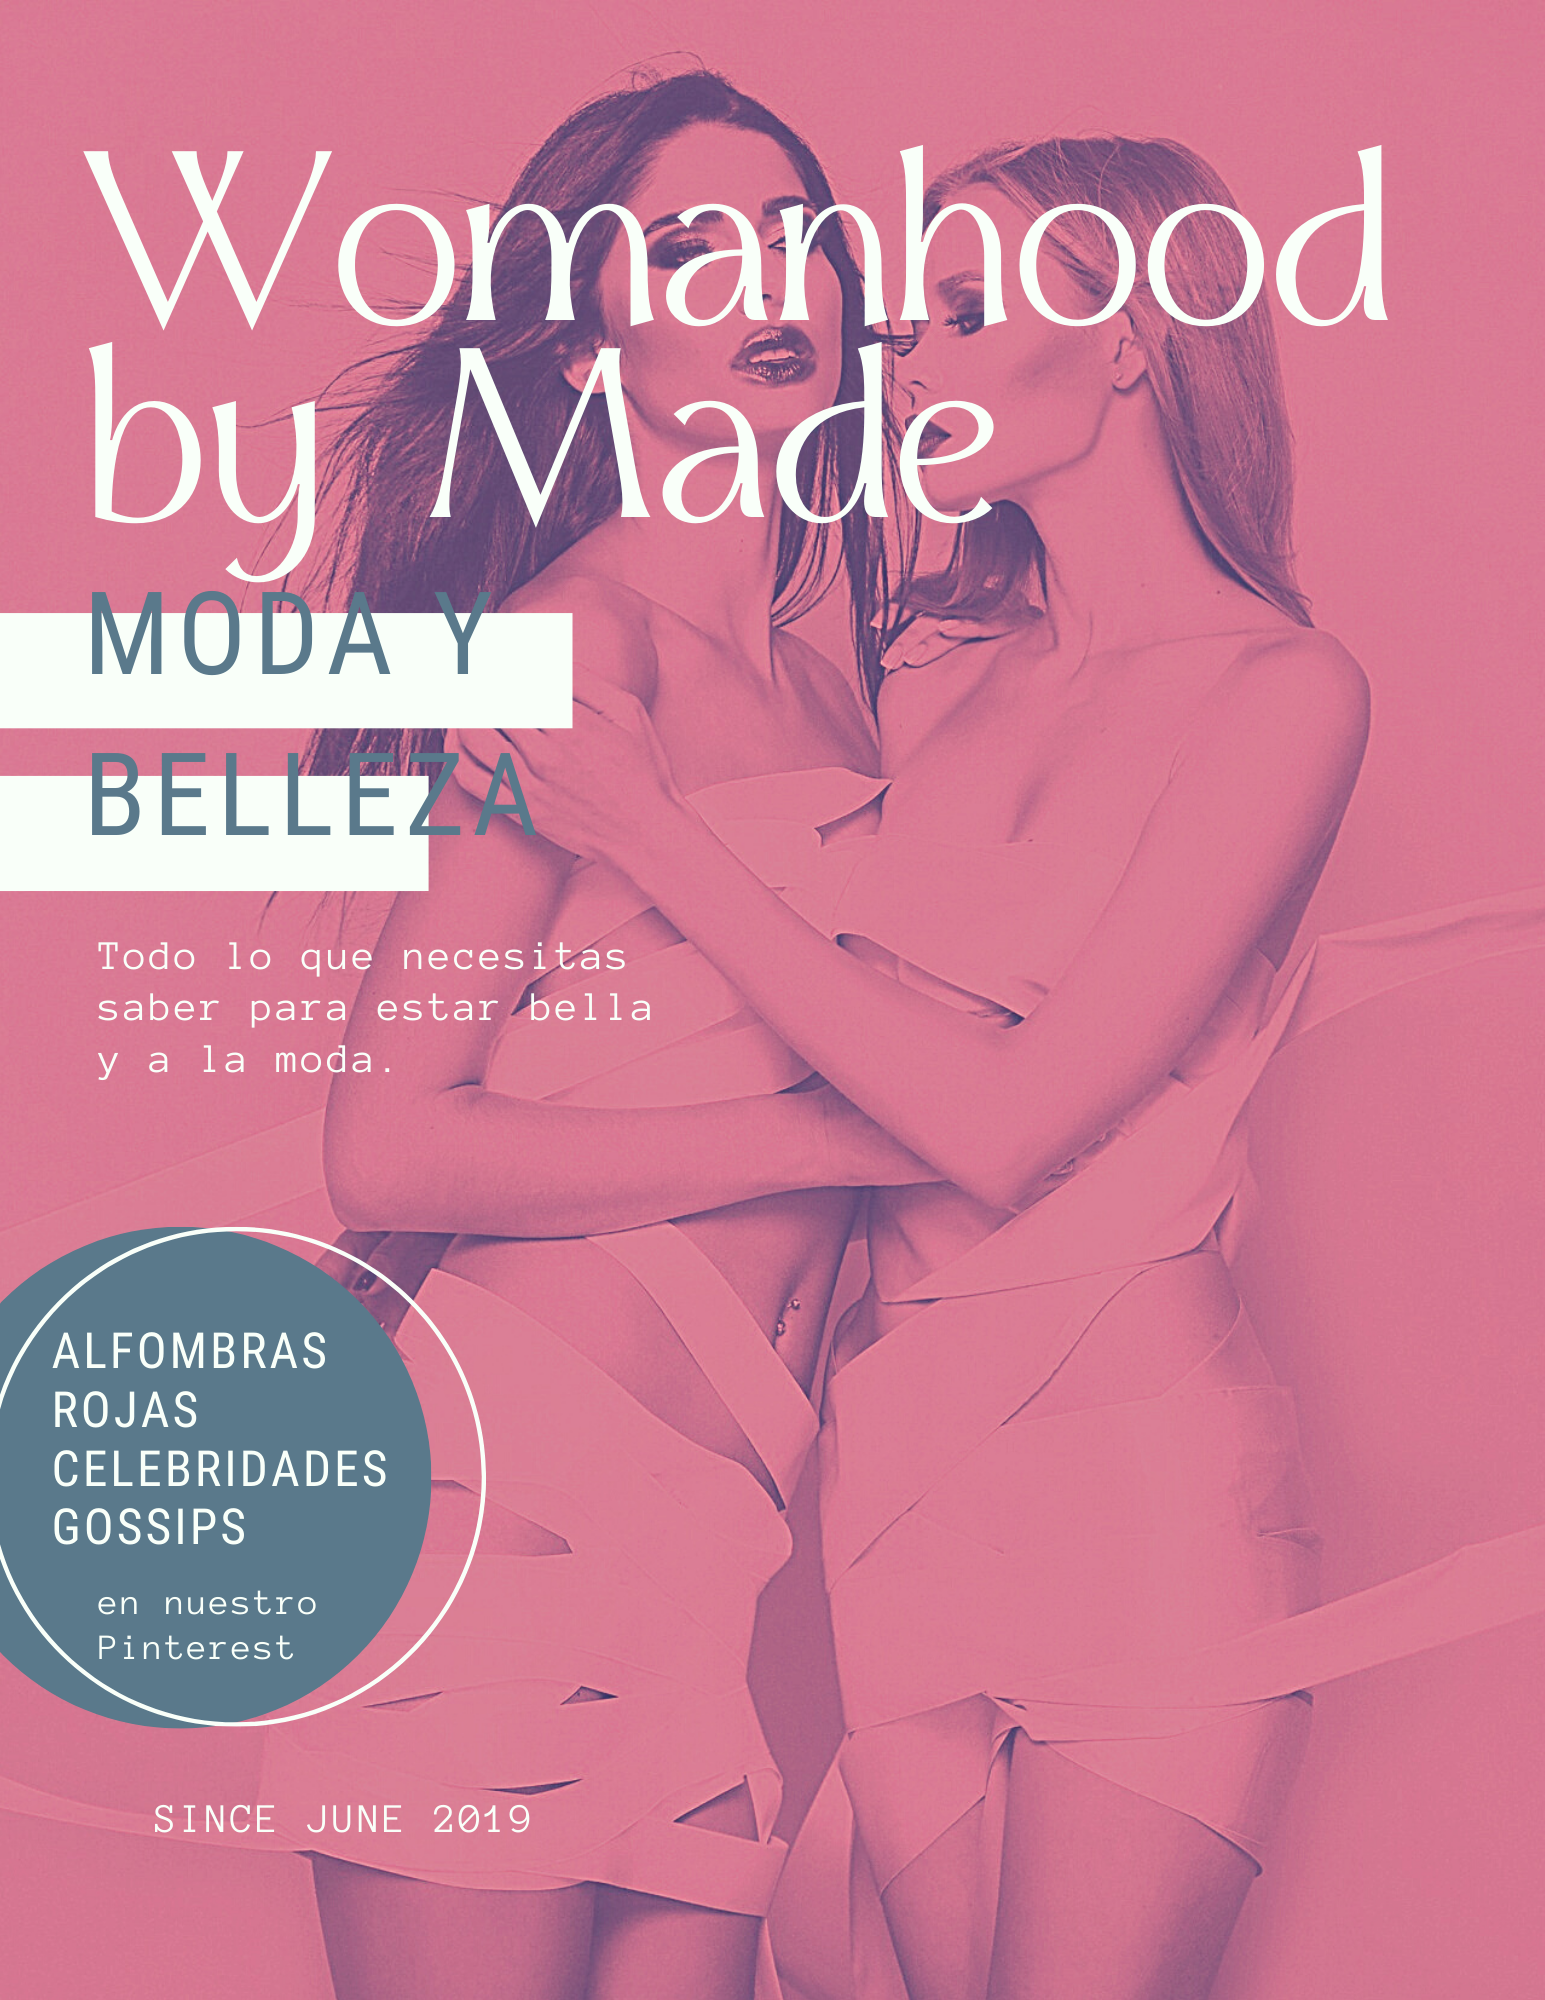 Womanhood by Made